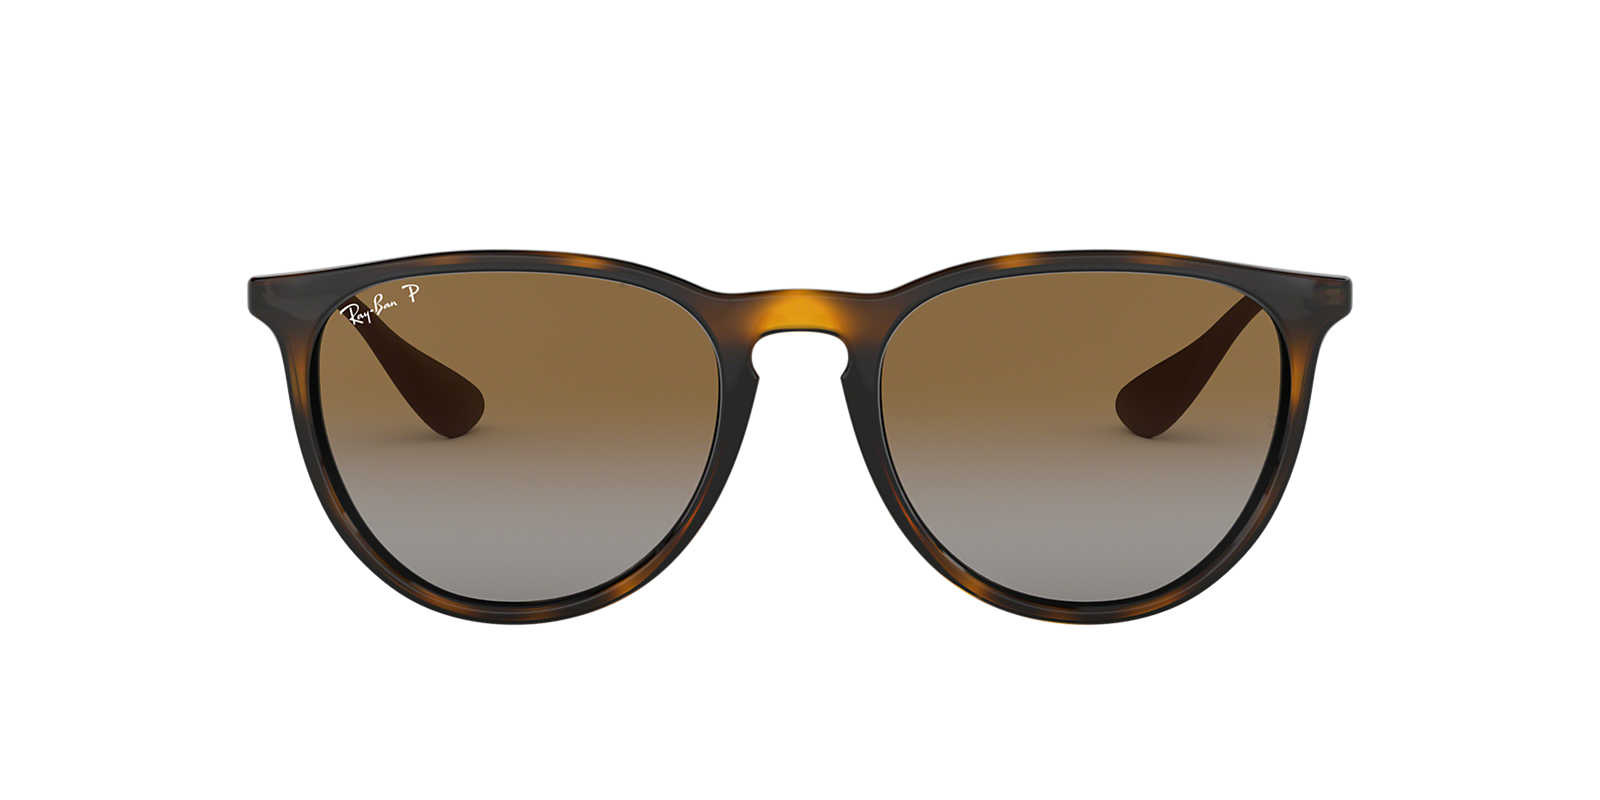 designer sunglass stores  Women\u0027s Sunglasses - Luxury \u0026 Designer Sunglasses